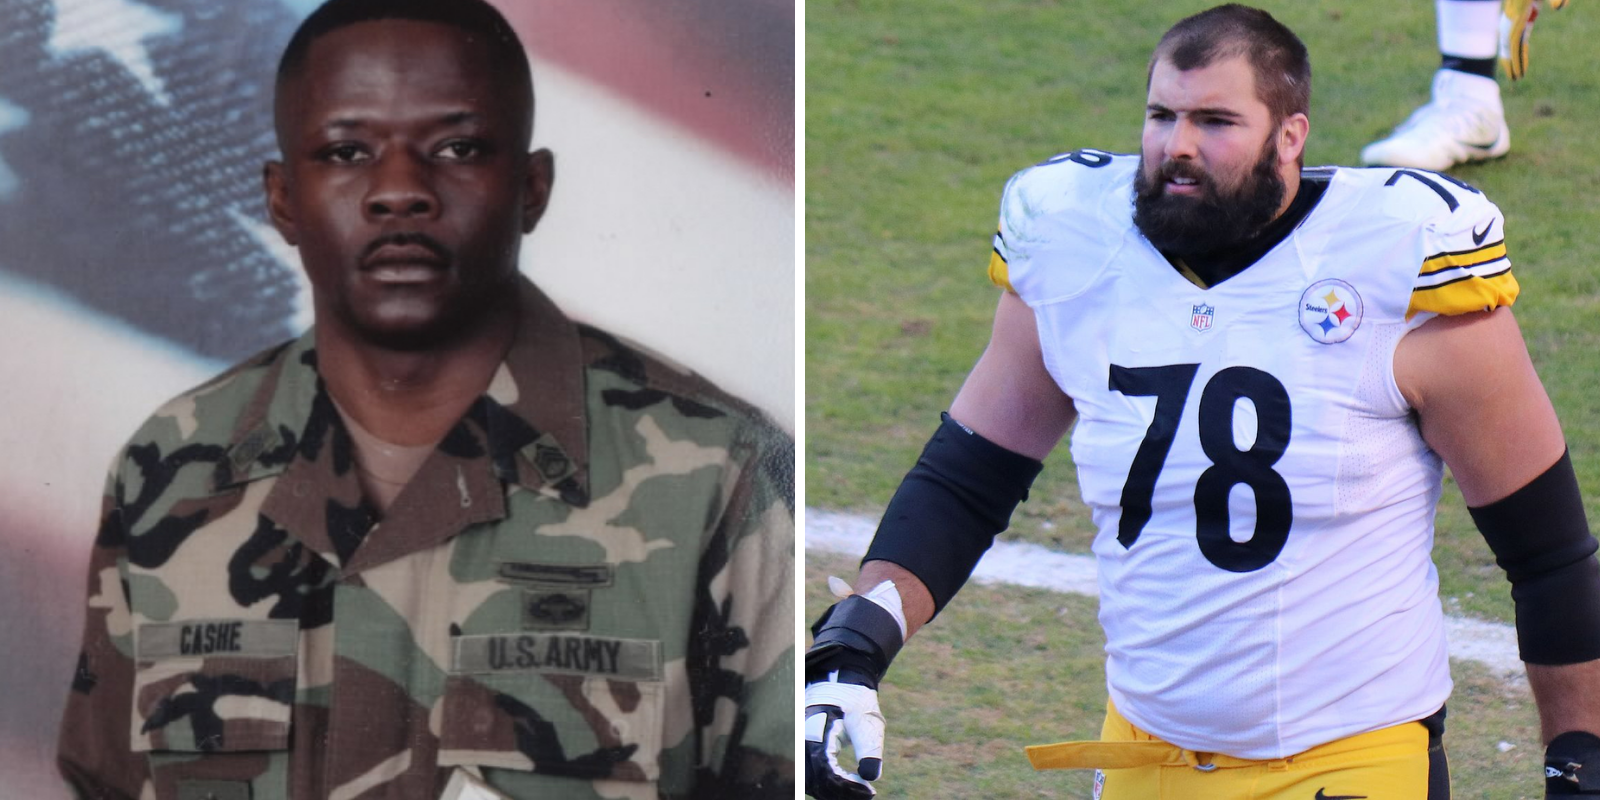 Steelers pays tribute to Army hero on helmet, breaking with BLM message of team